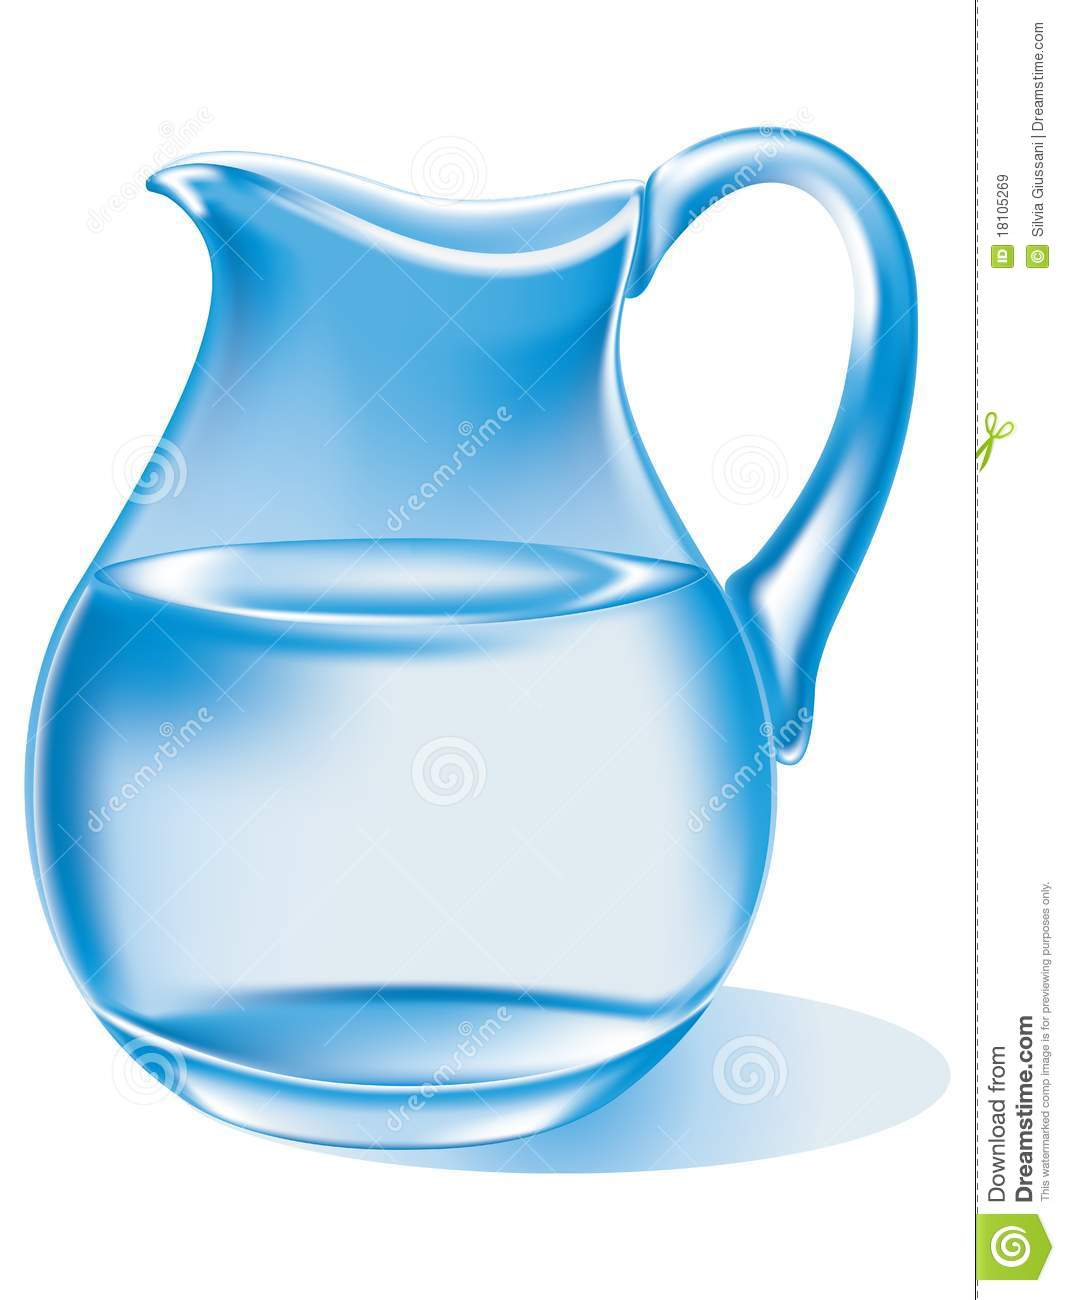 Blue Water clipart jug water Pitcher%20of%20water%20clipart Water Of Clipart Images